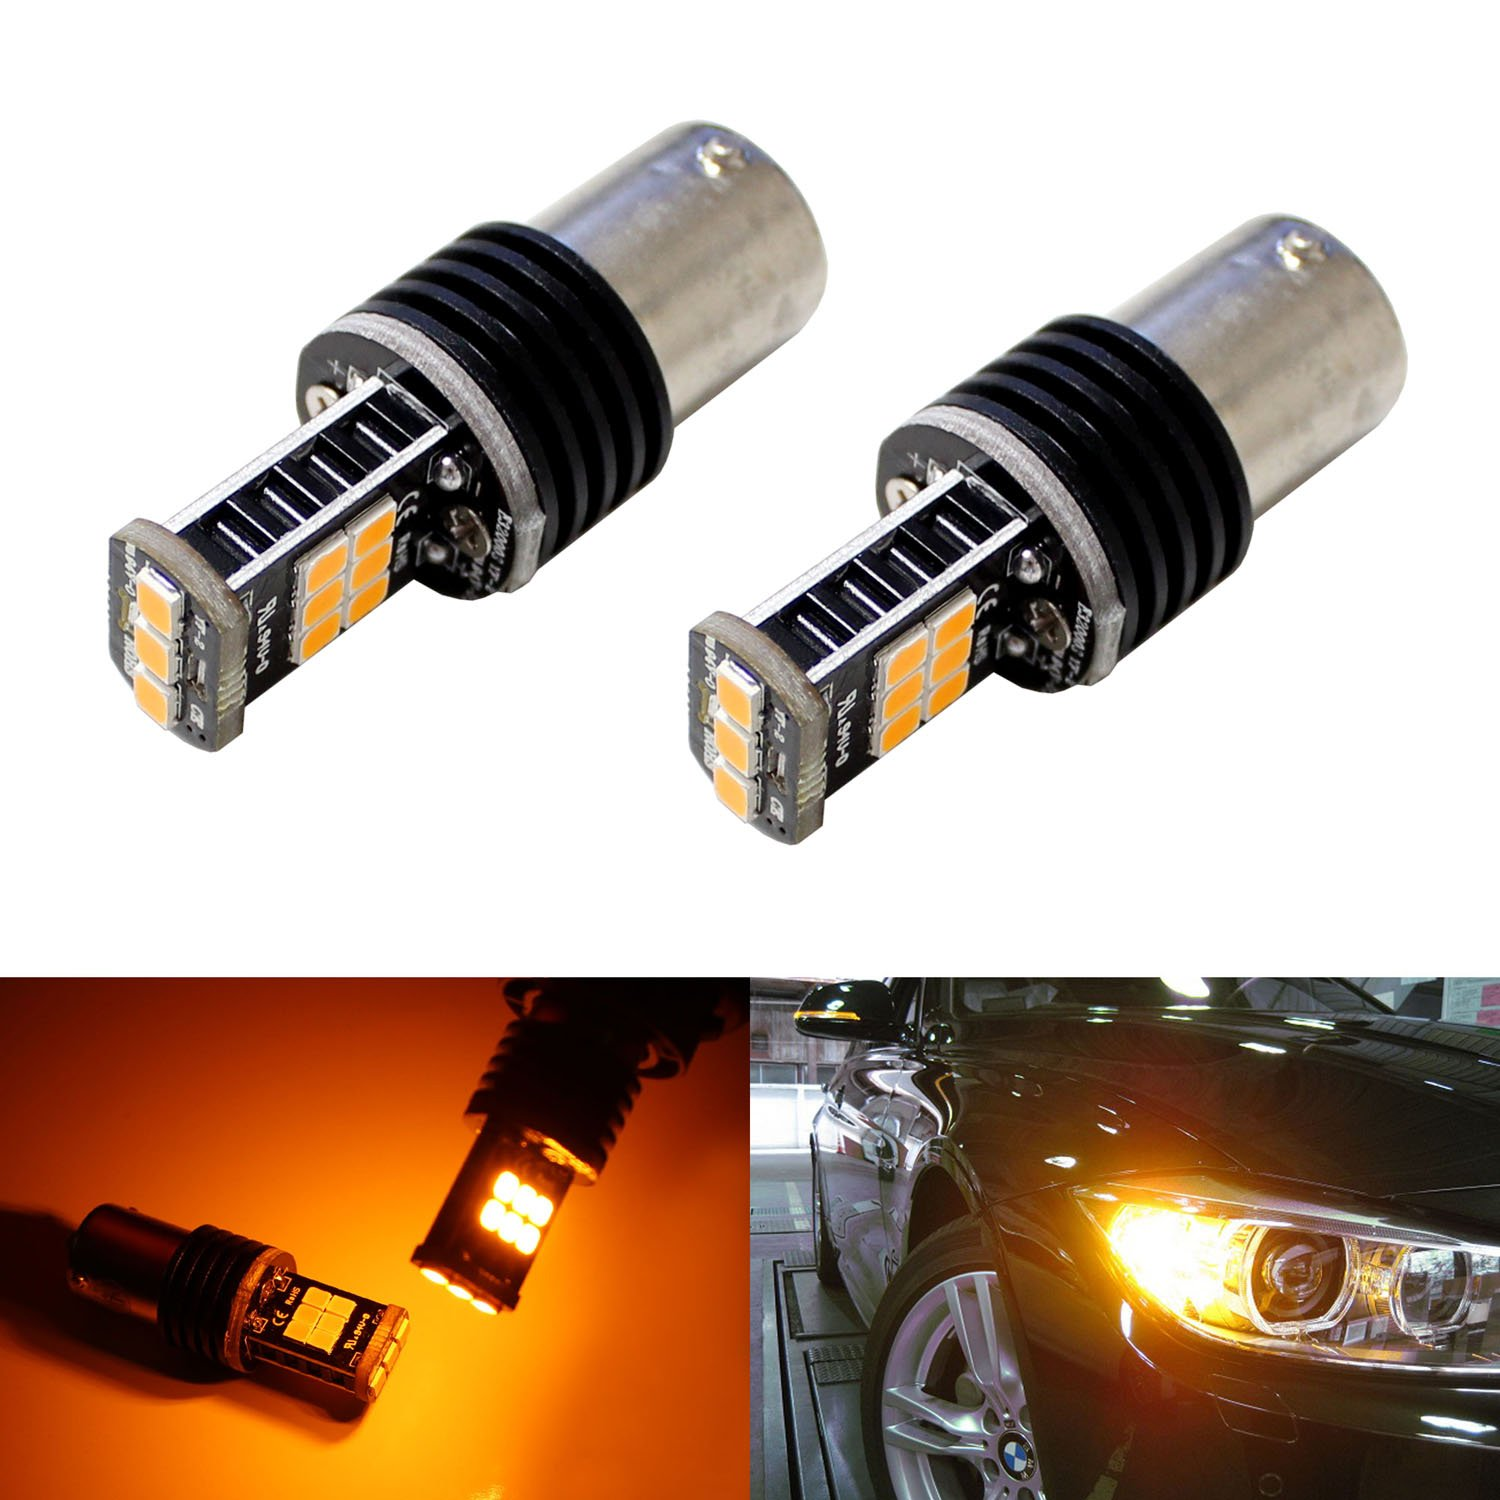 iJDMTOY (2) Amber CAN-bus Error Free 7507 PY21W LED Bulbs For BMW 1 2 3 4 5 Series X1 X3 X4 X5, etc Front or Rear Turn Signal Lights